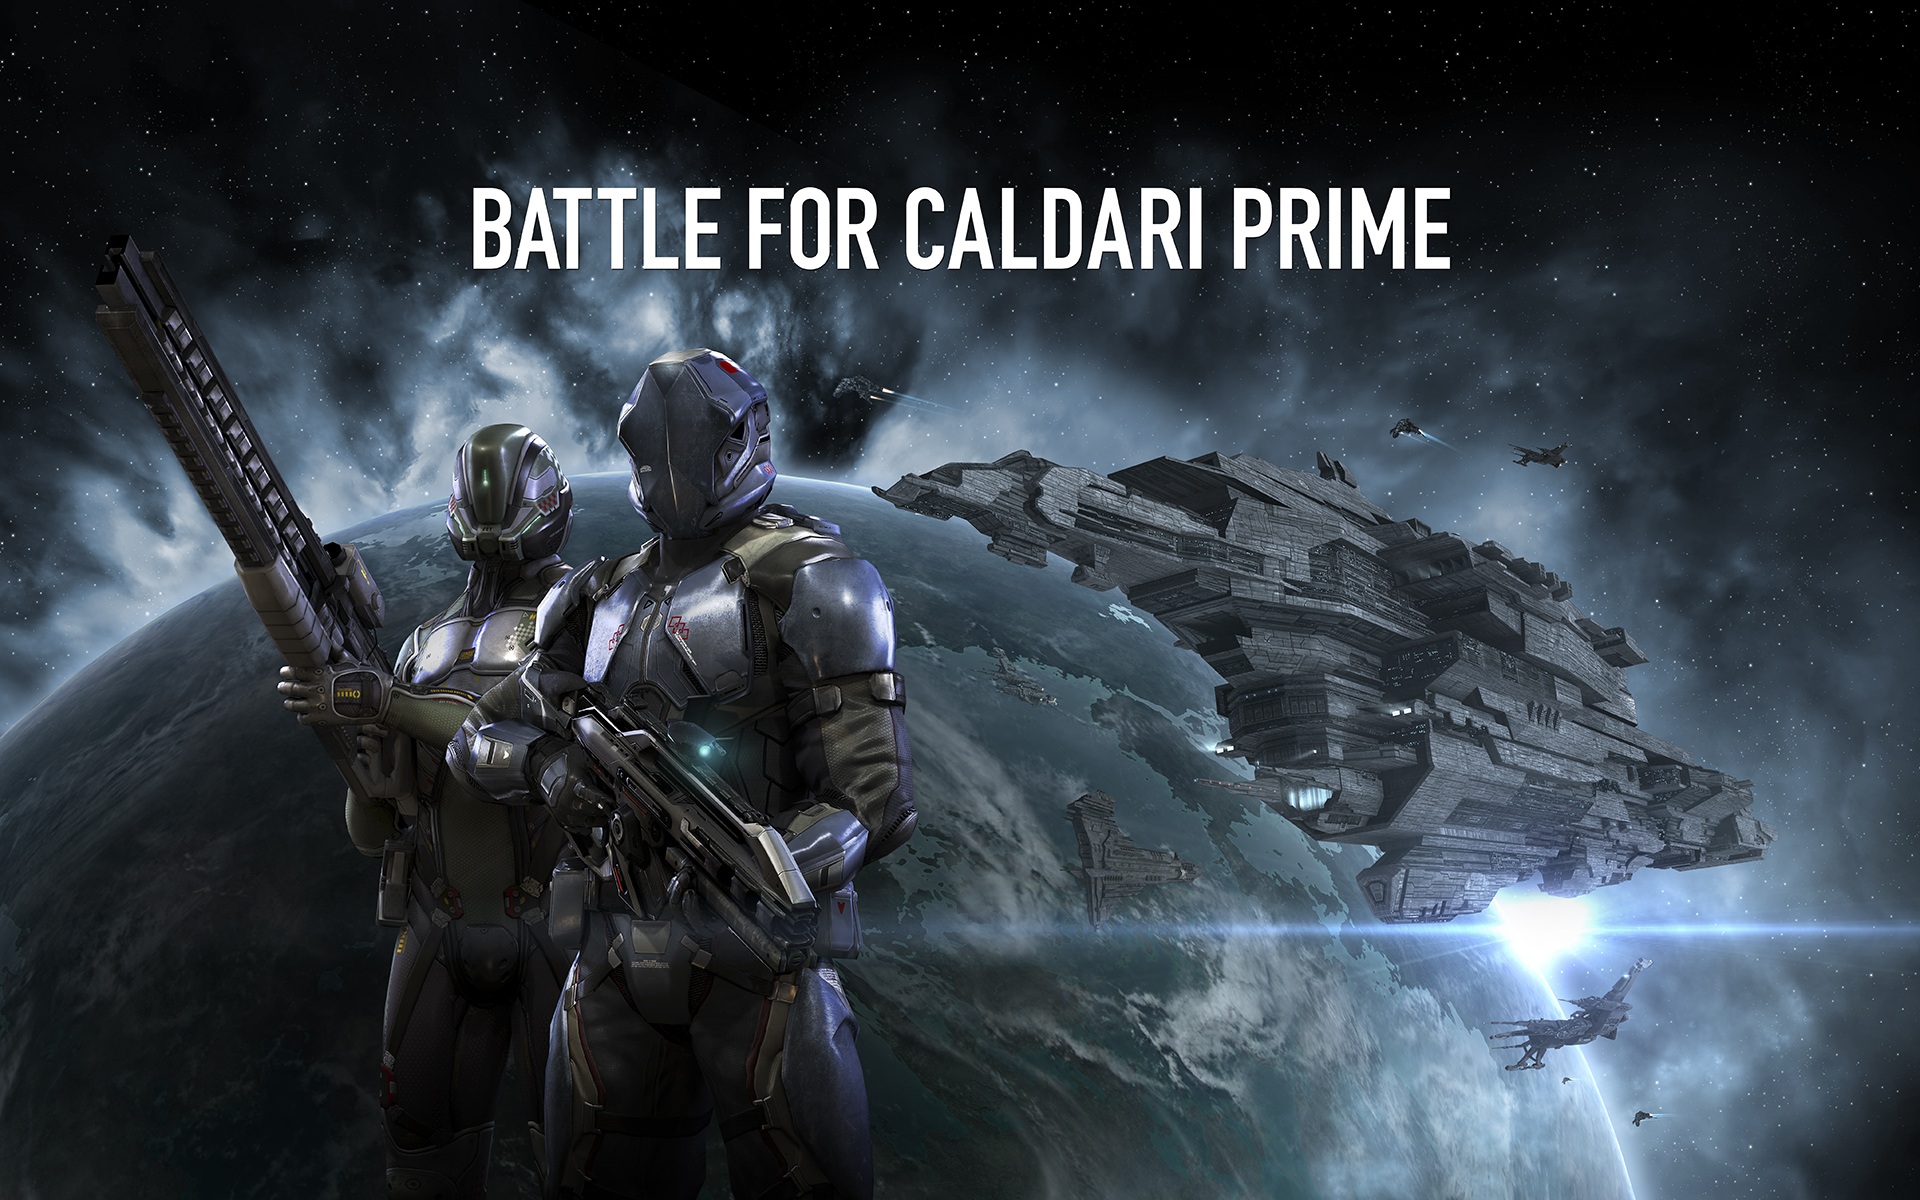 Battle for Caldari Prime